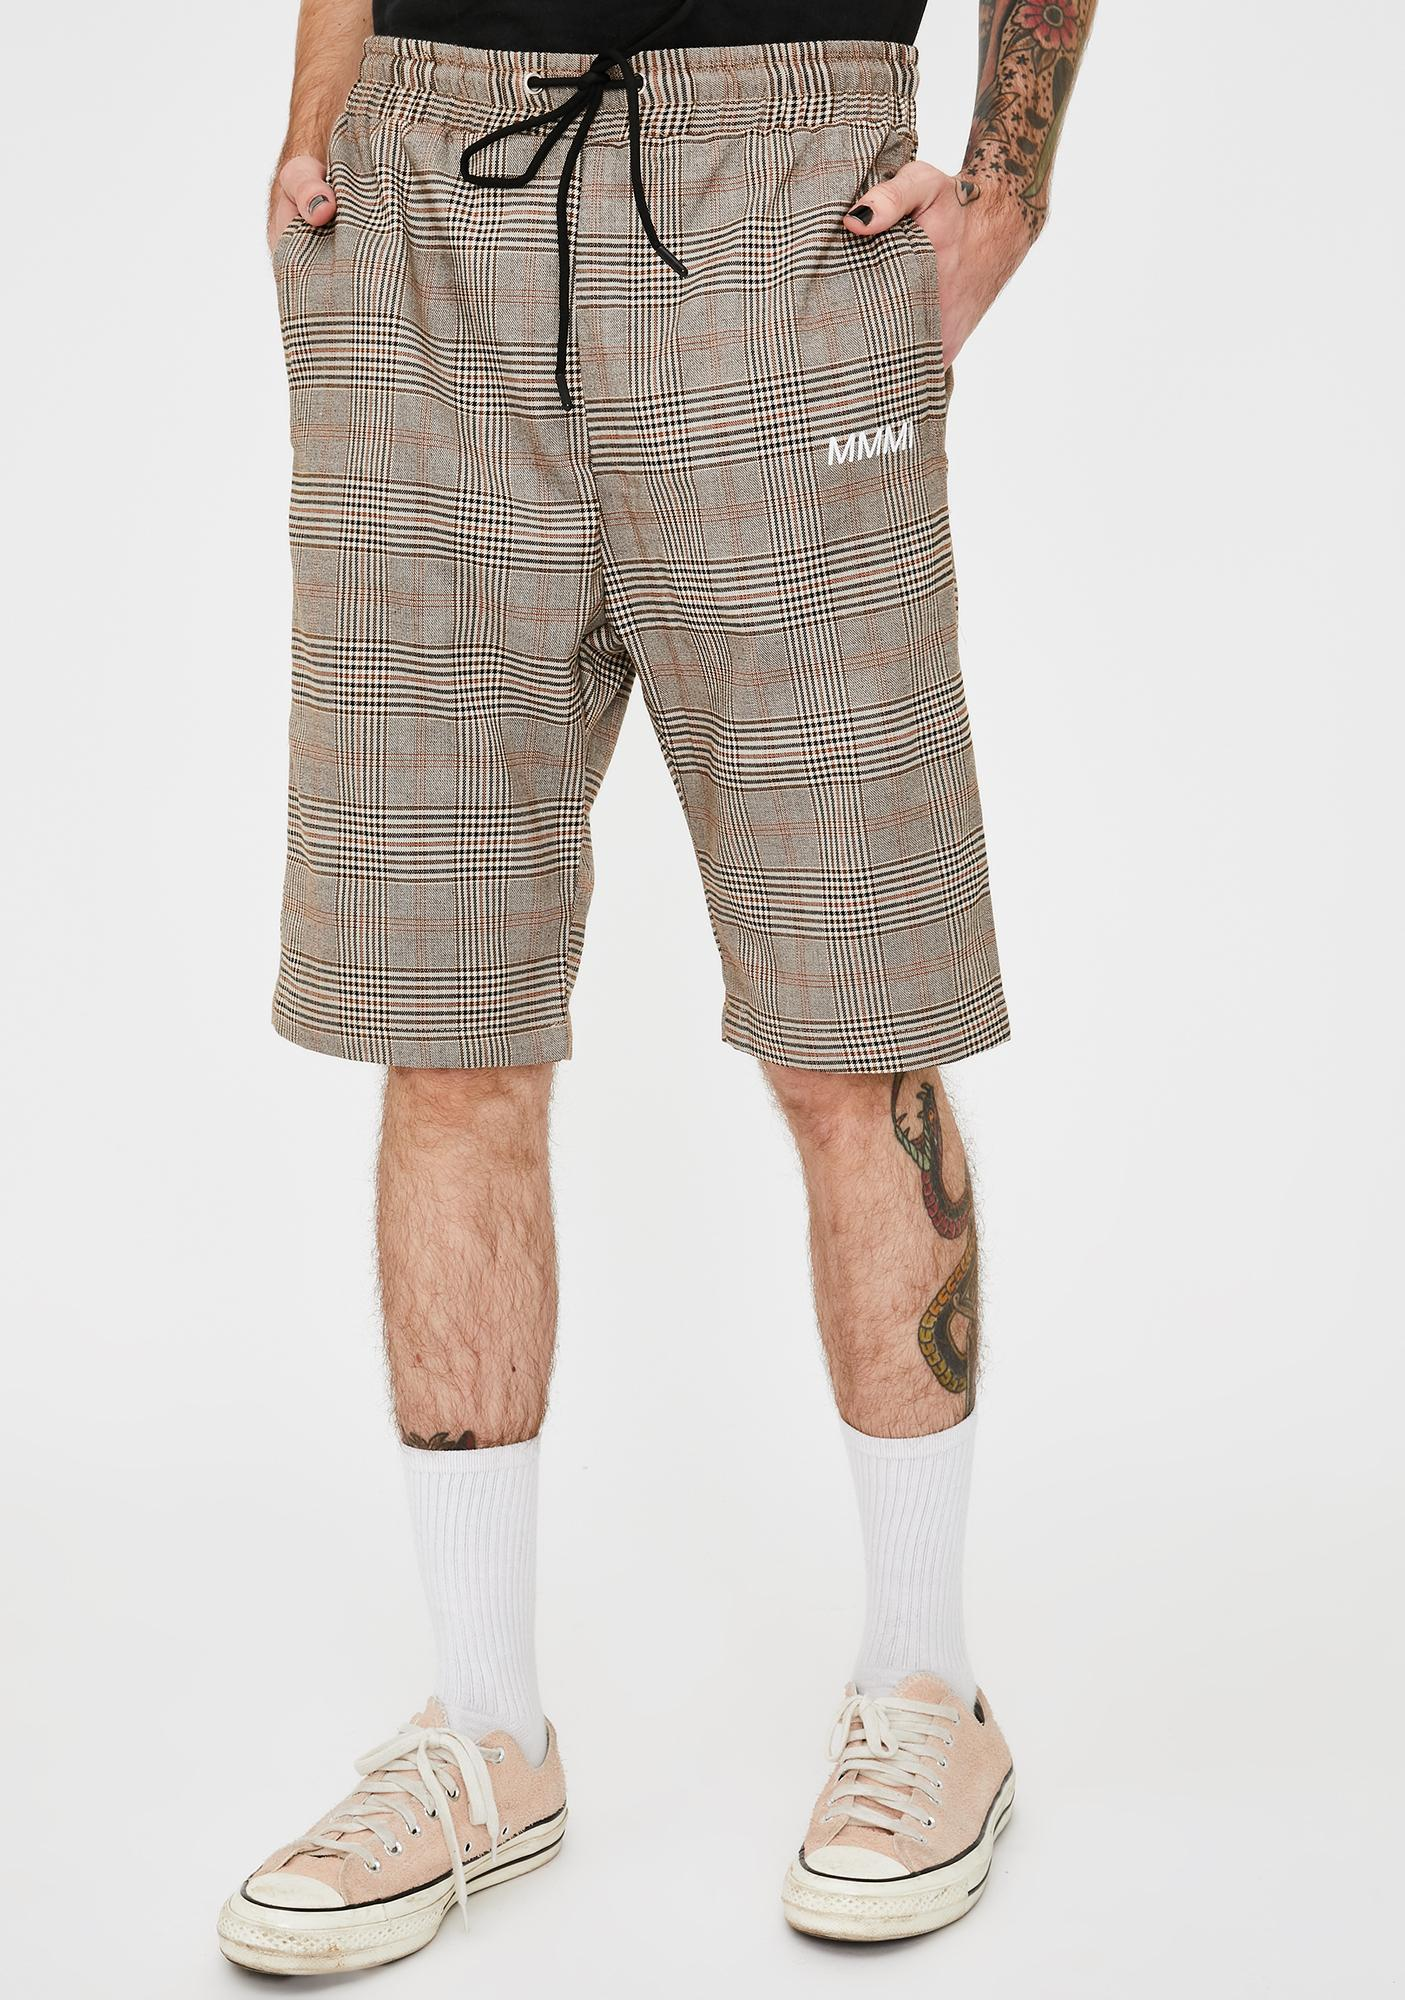 My Mum Made It Mens Plaid Drawstring Shorts